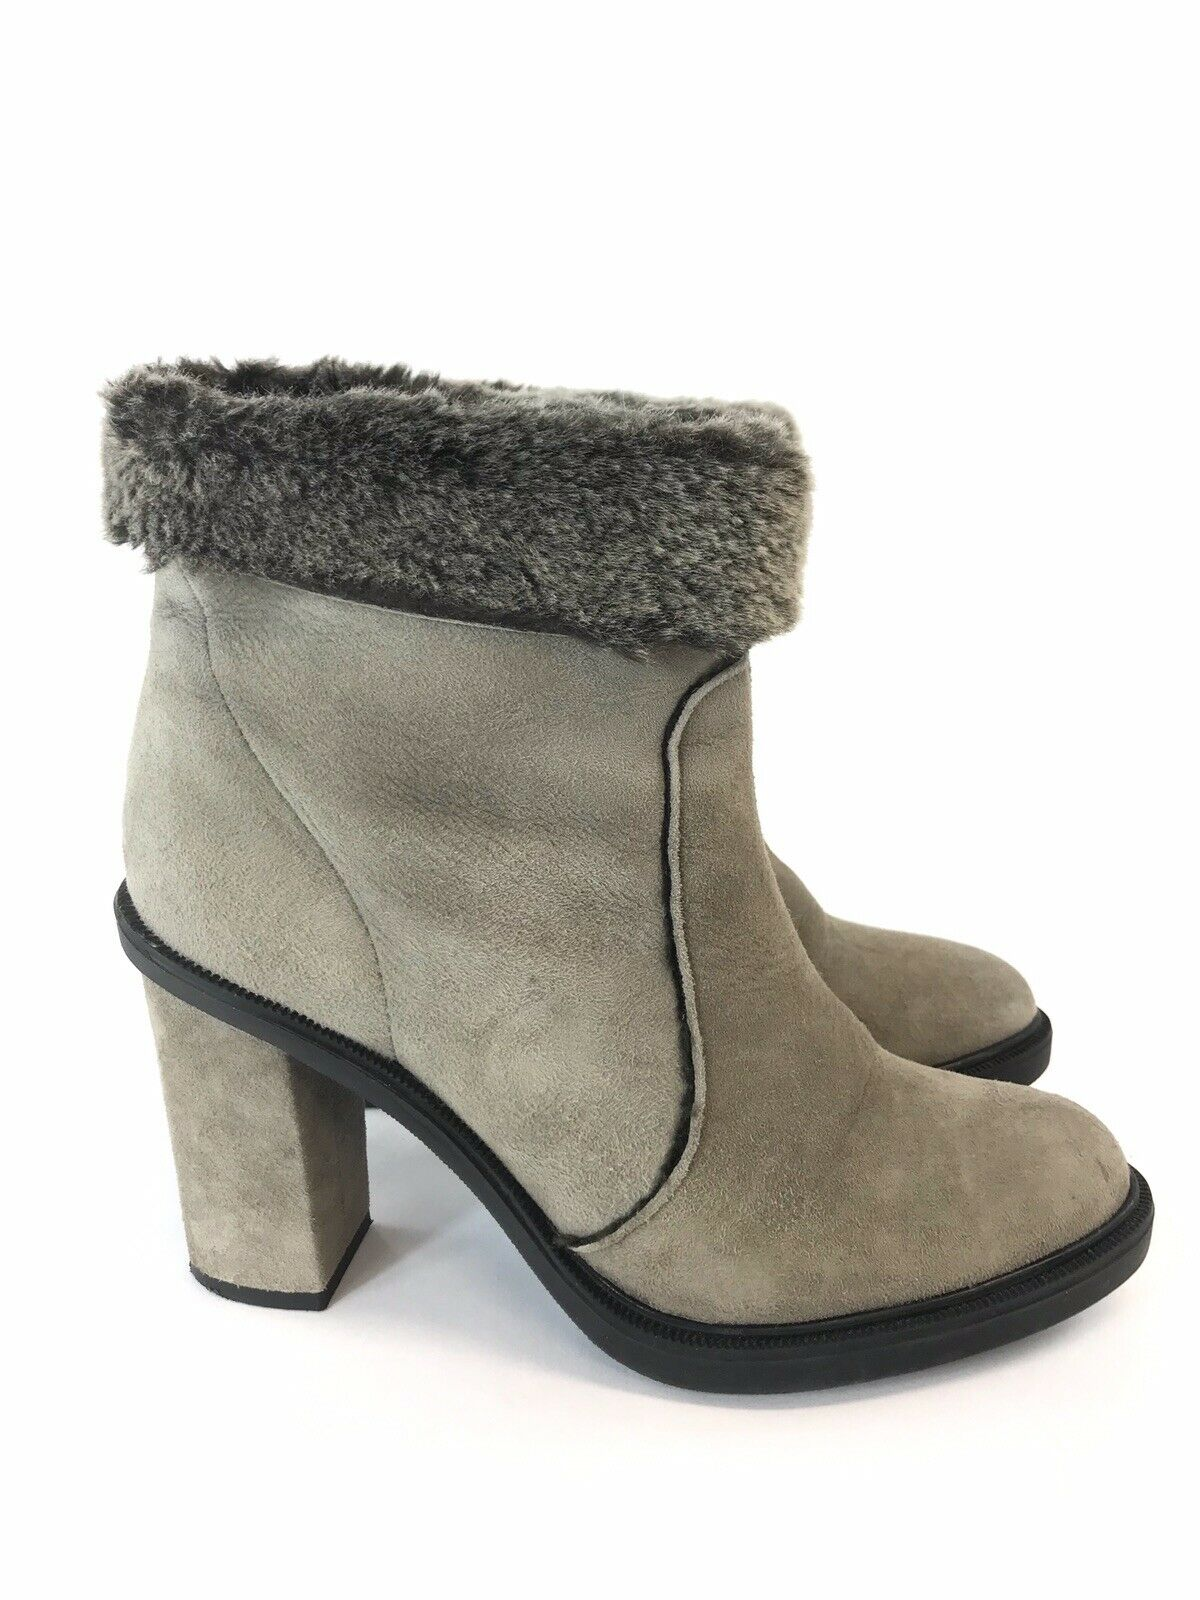 Zara Ladies Grey Leather Suede Ankle Pull On  High Heels Soft Fur Boots Sz UK4